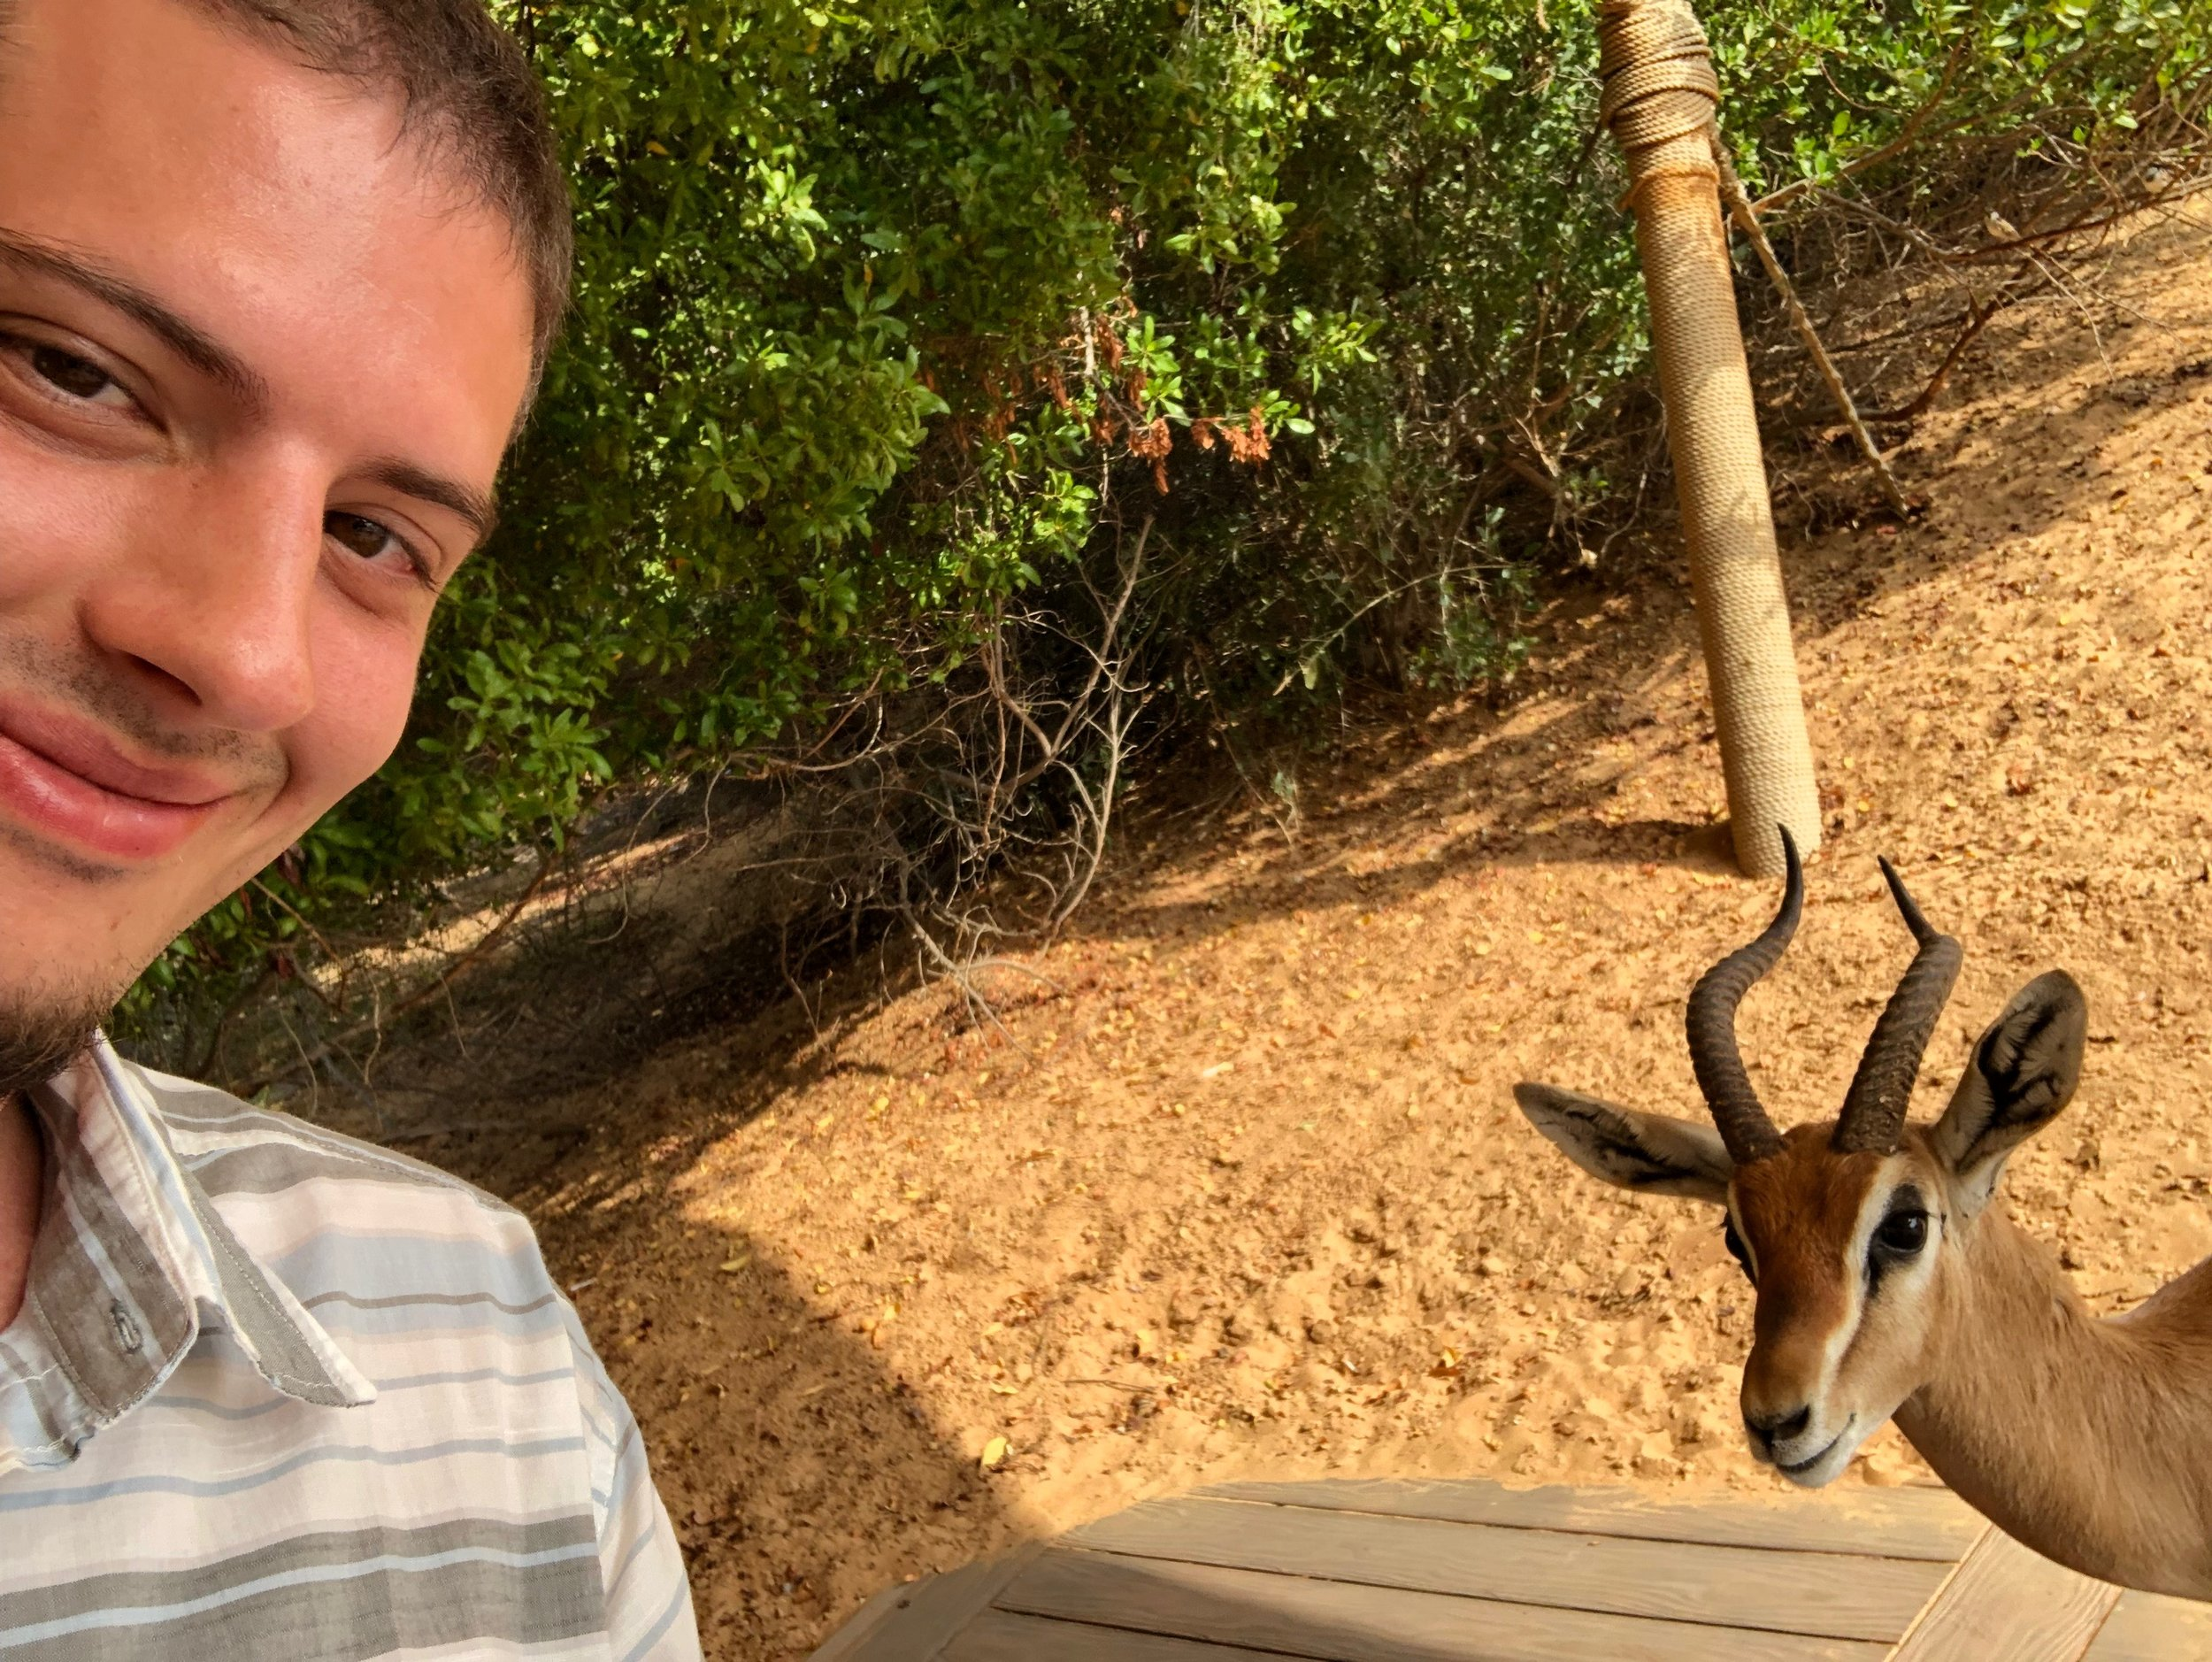 One of the many wild gazelles on the property deciding to take a selfie with me